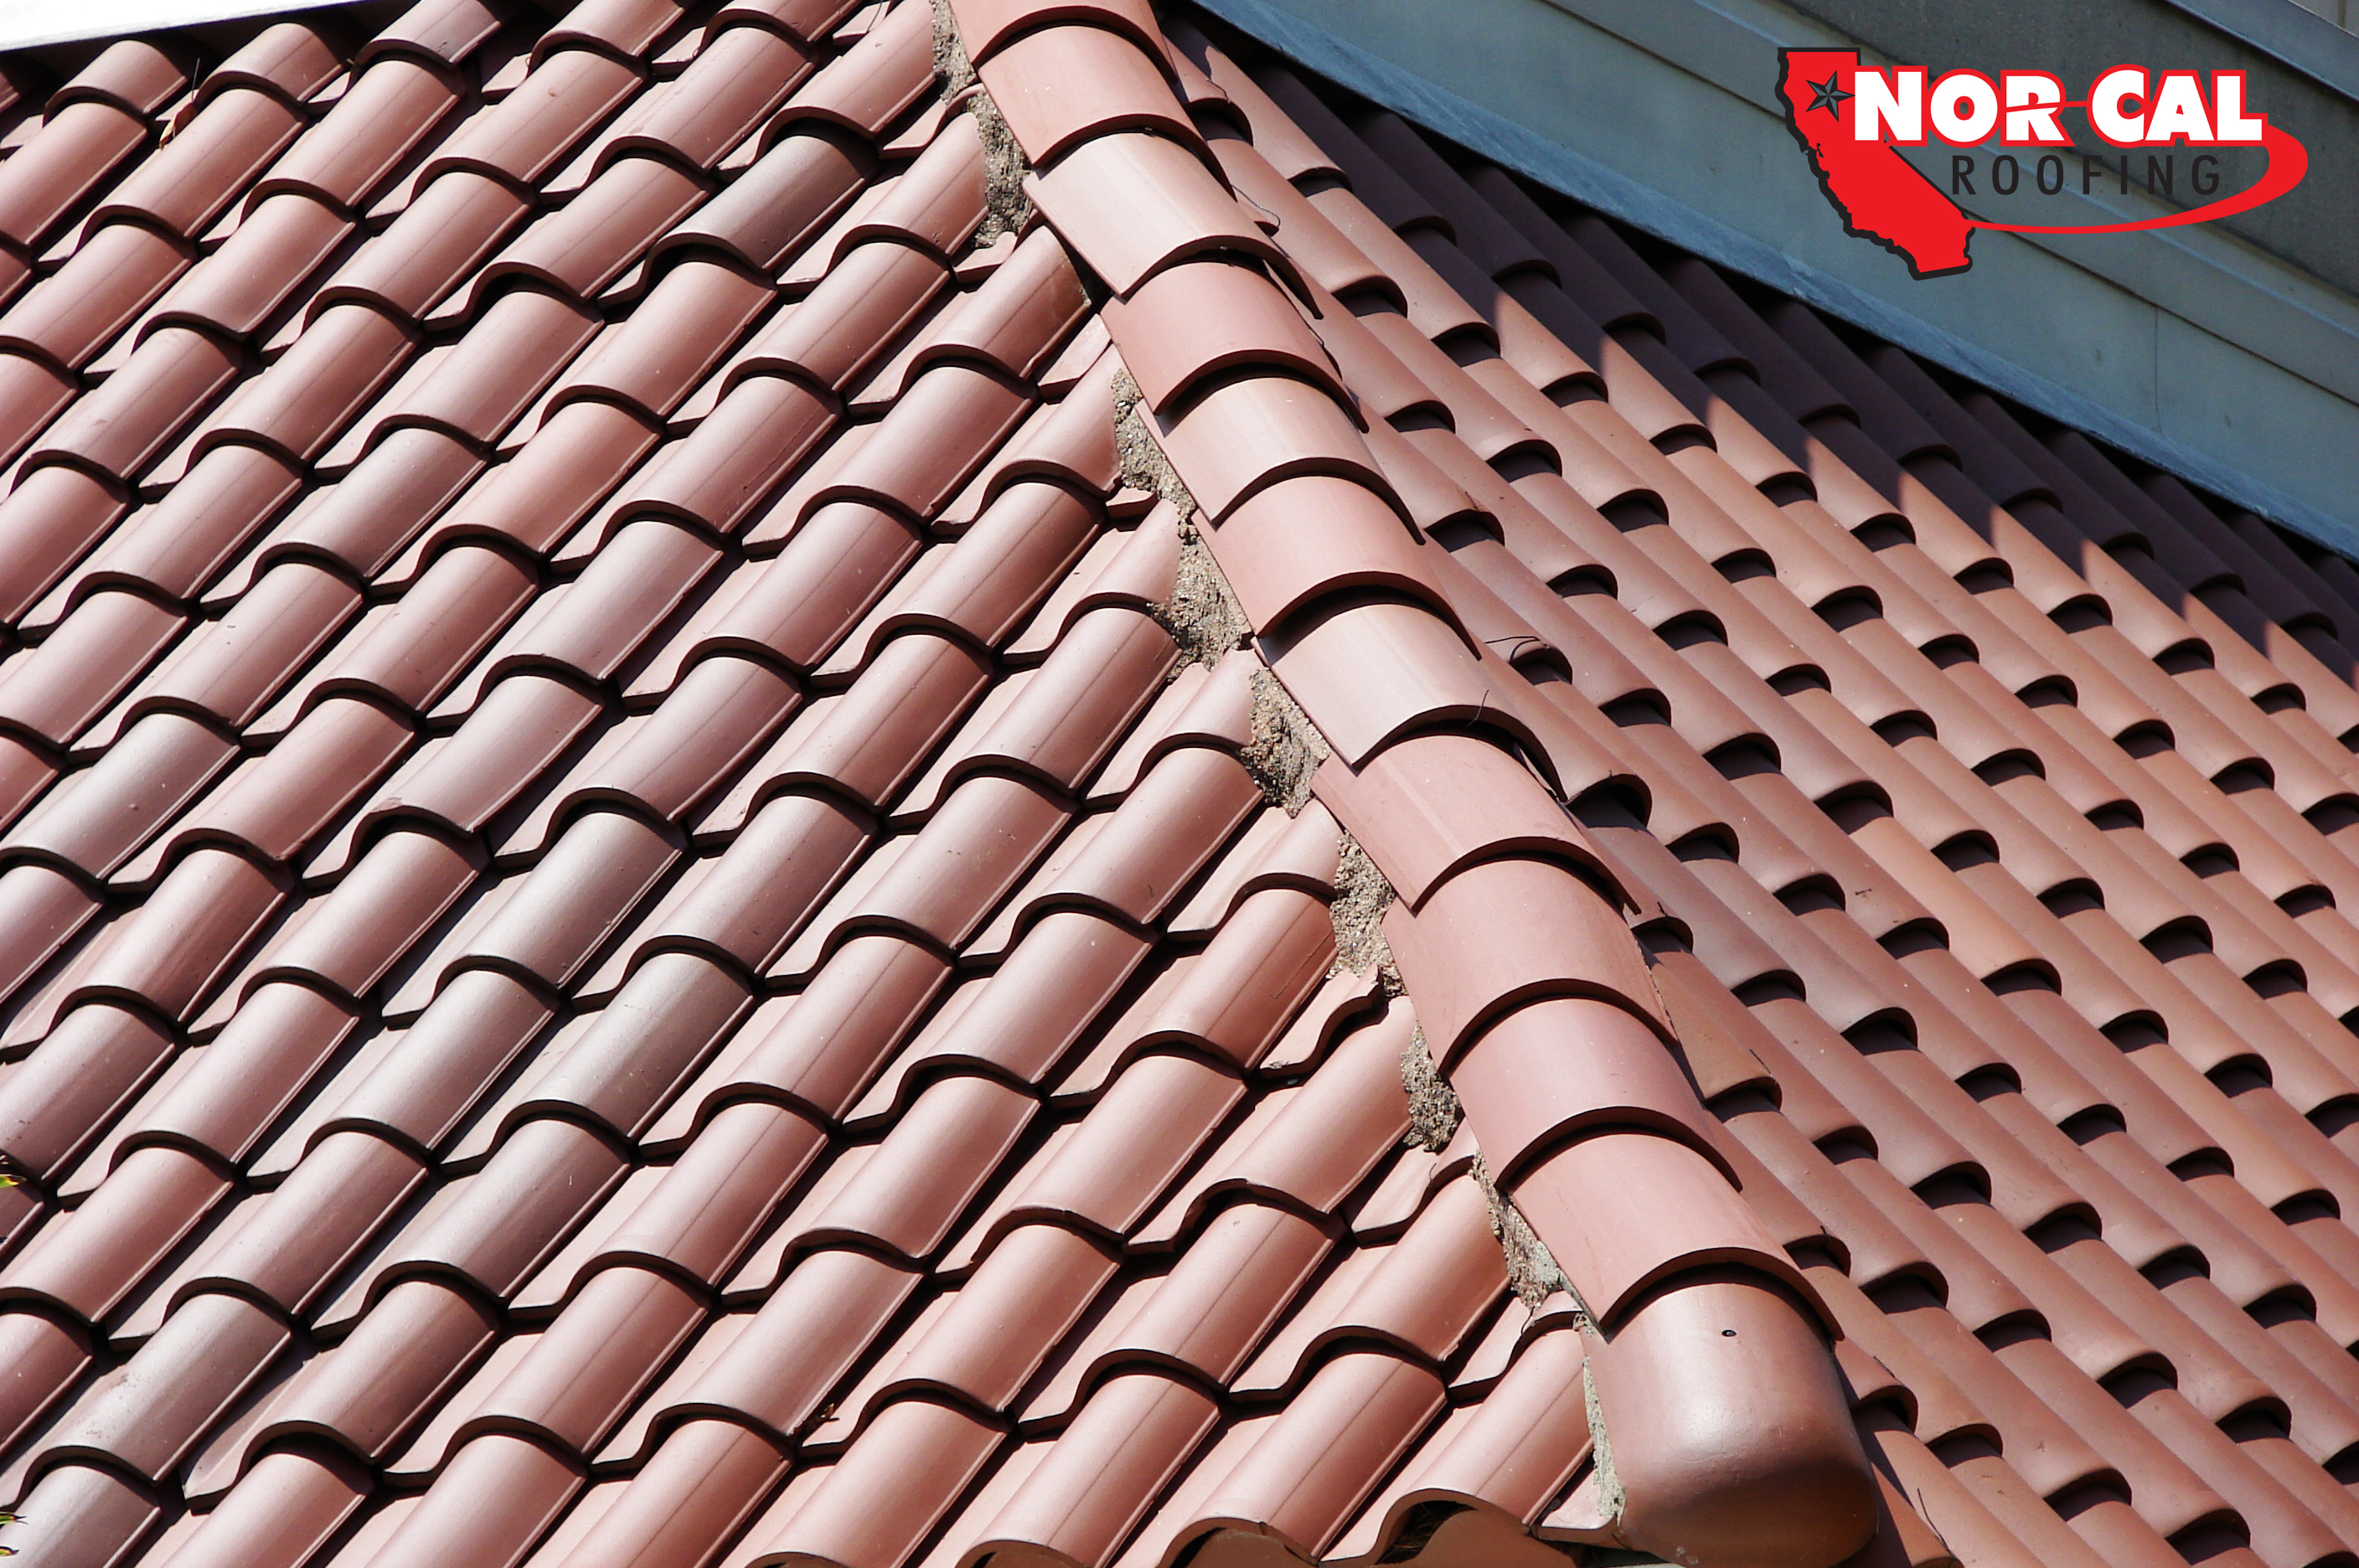 Comparison of asphalt shingles and metal roofing orland ca for Spanish clay tile roof